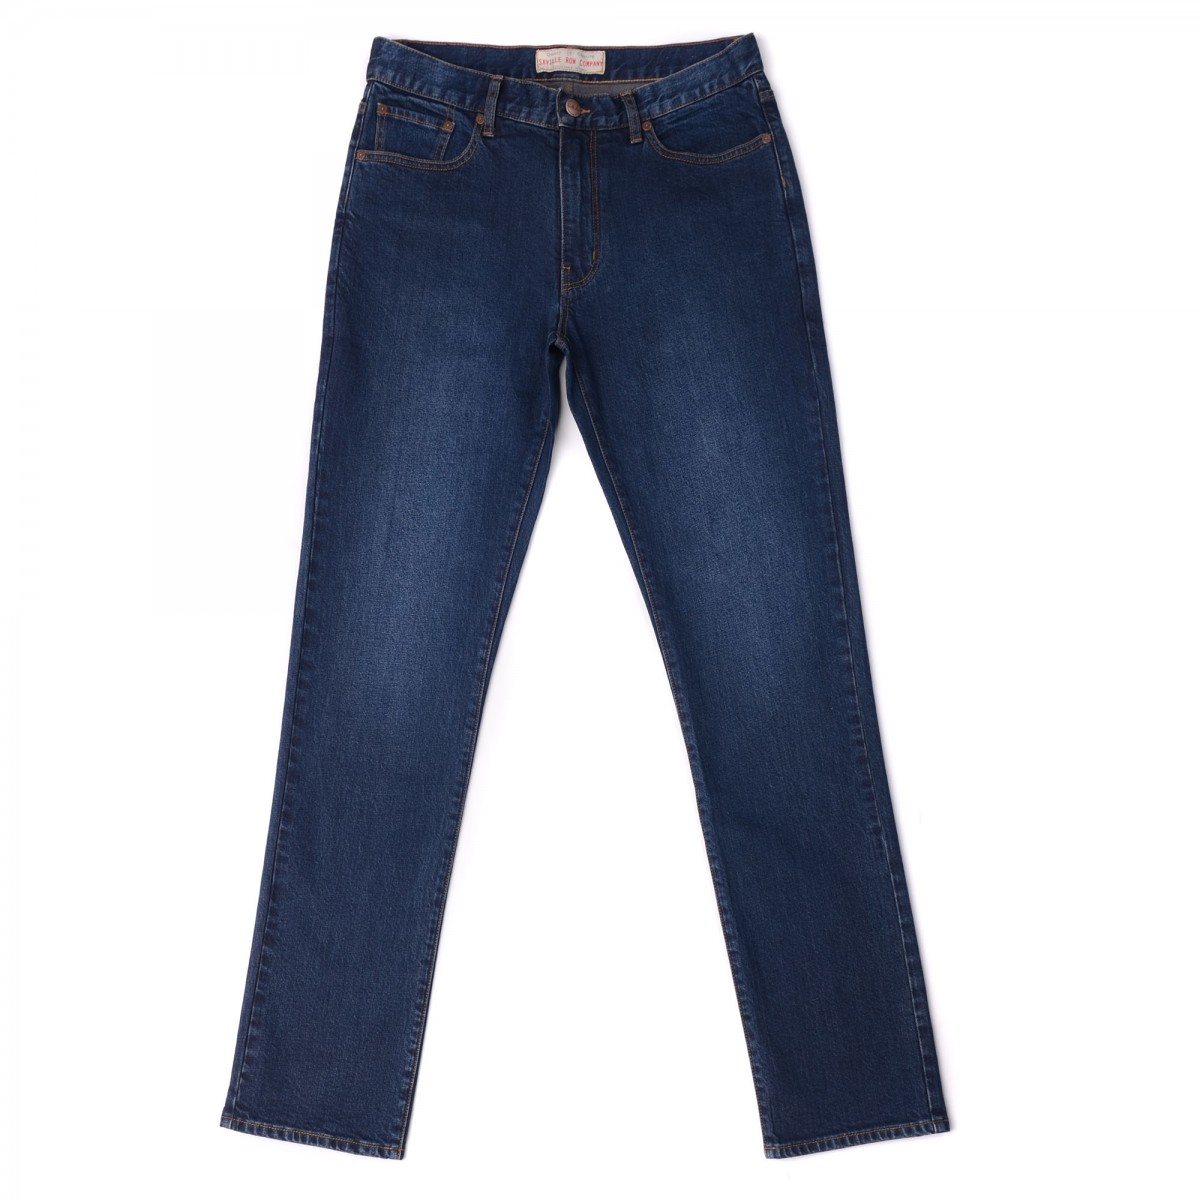 Jeans Slim Denim Comfort Lavado Raw